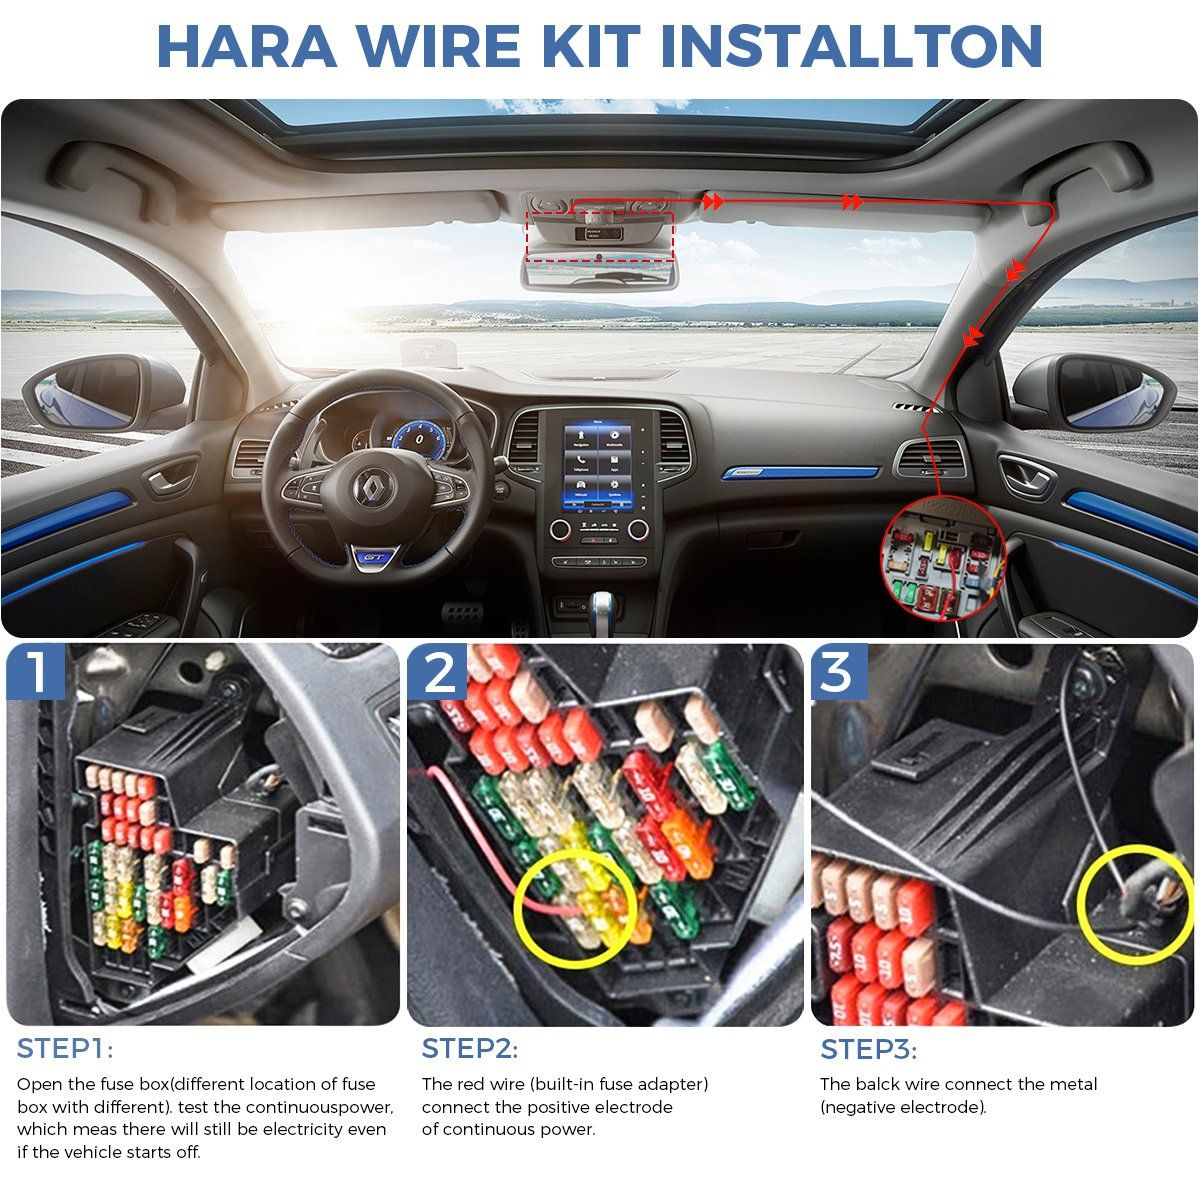 small resolution of dash cam hardwire kit mini usb hard wire car charger cable kit 12v to 5v for